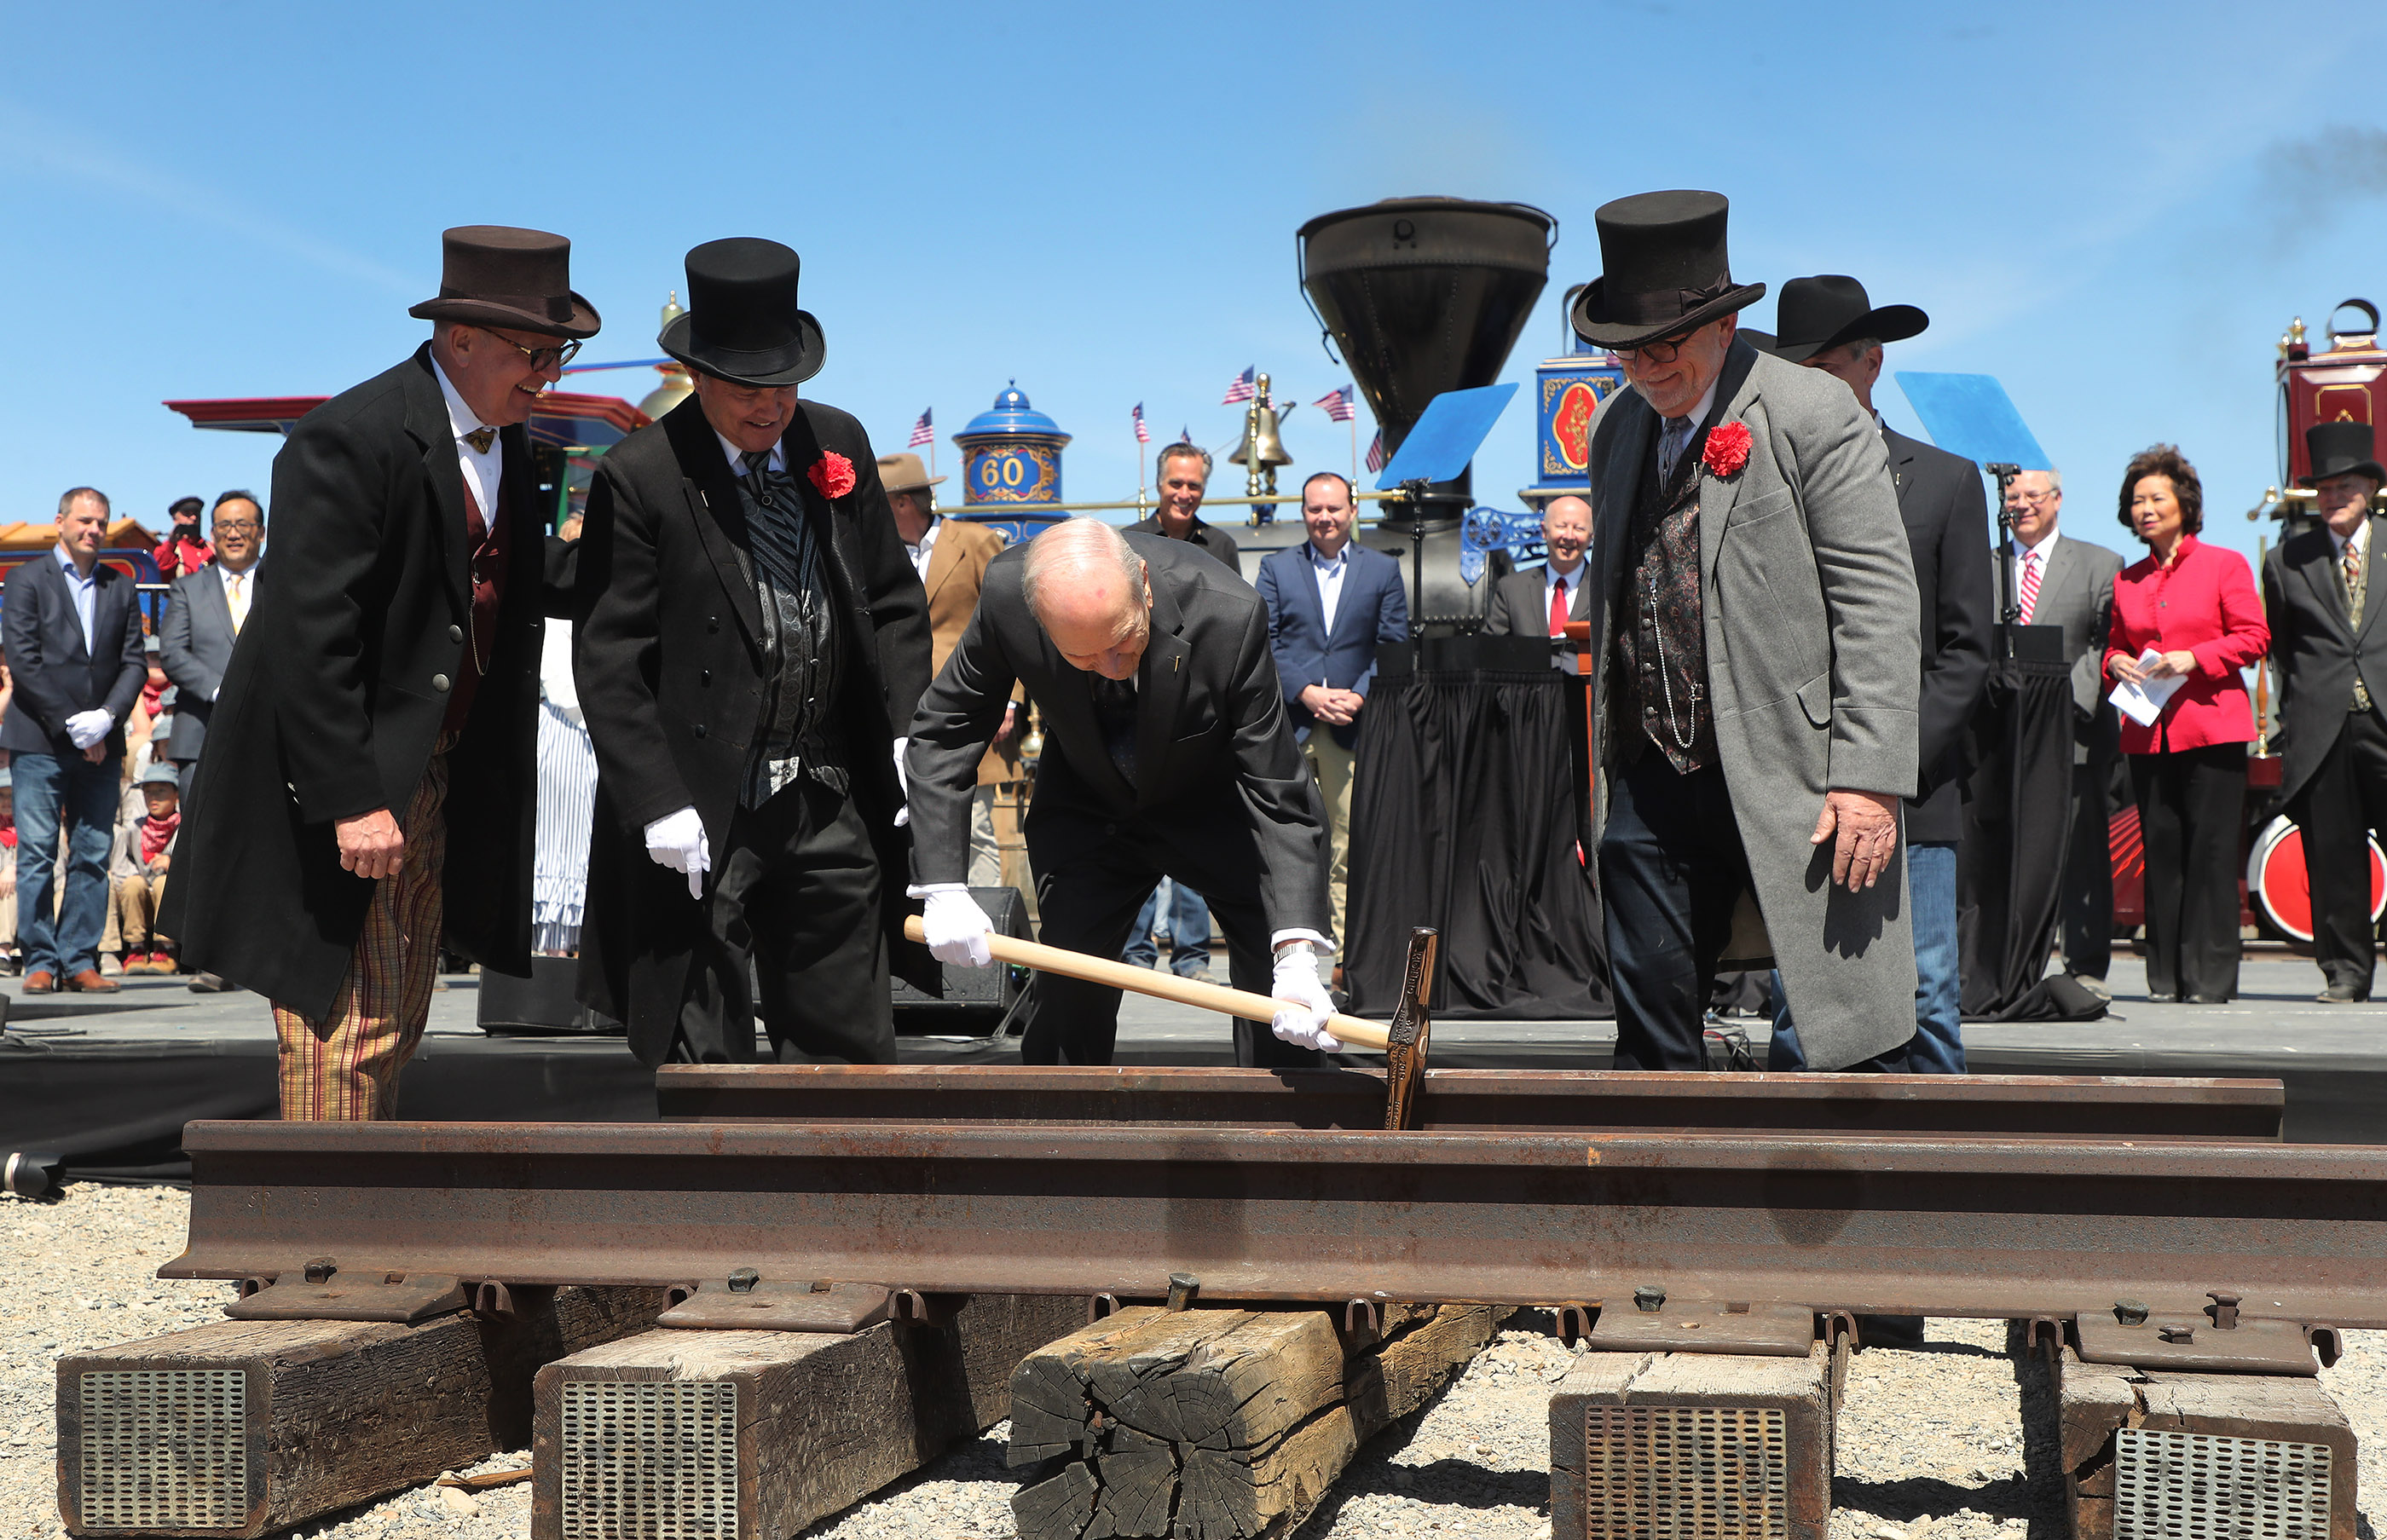 President Russell M. Nelson of The Church of Jesus Christ of Latter-day Saints, center, drives a golden spike during the 150th anniversary celebration of the transcontinental railraod at the Golden Spike National Historical Park at Promontory Summit on Friday, May 10, 2019.